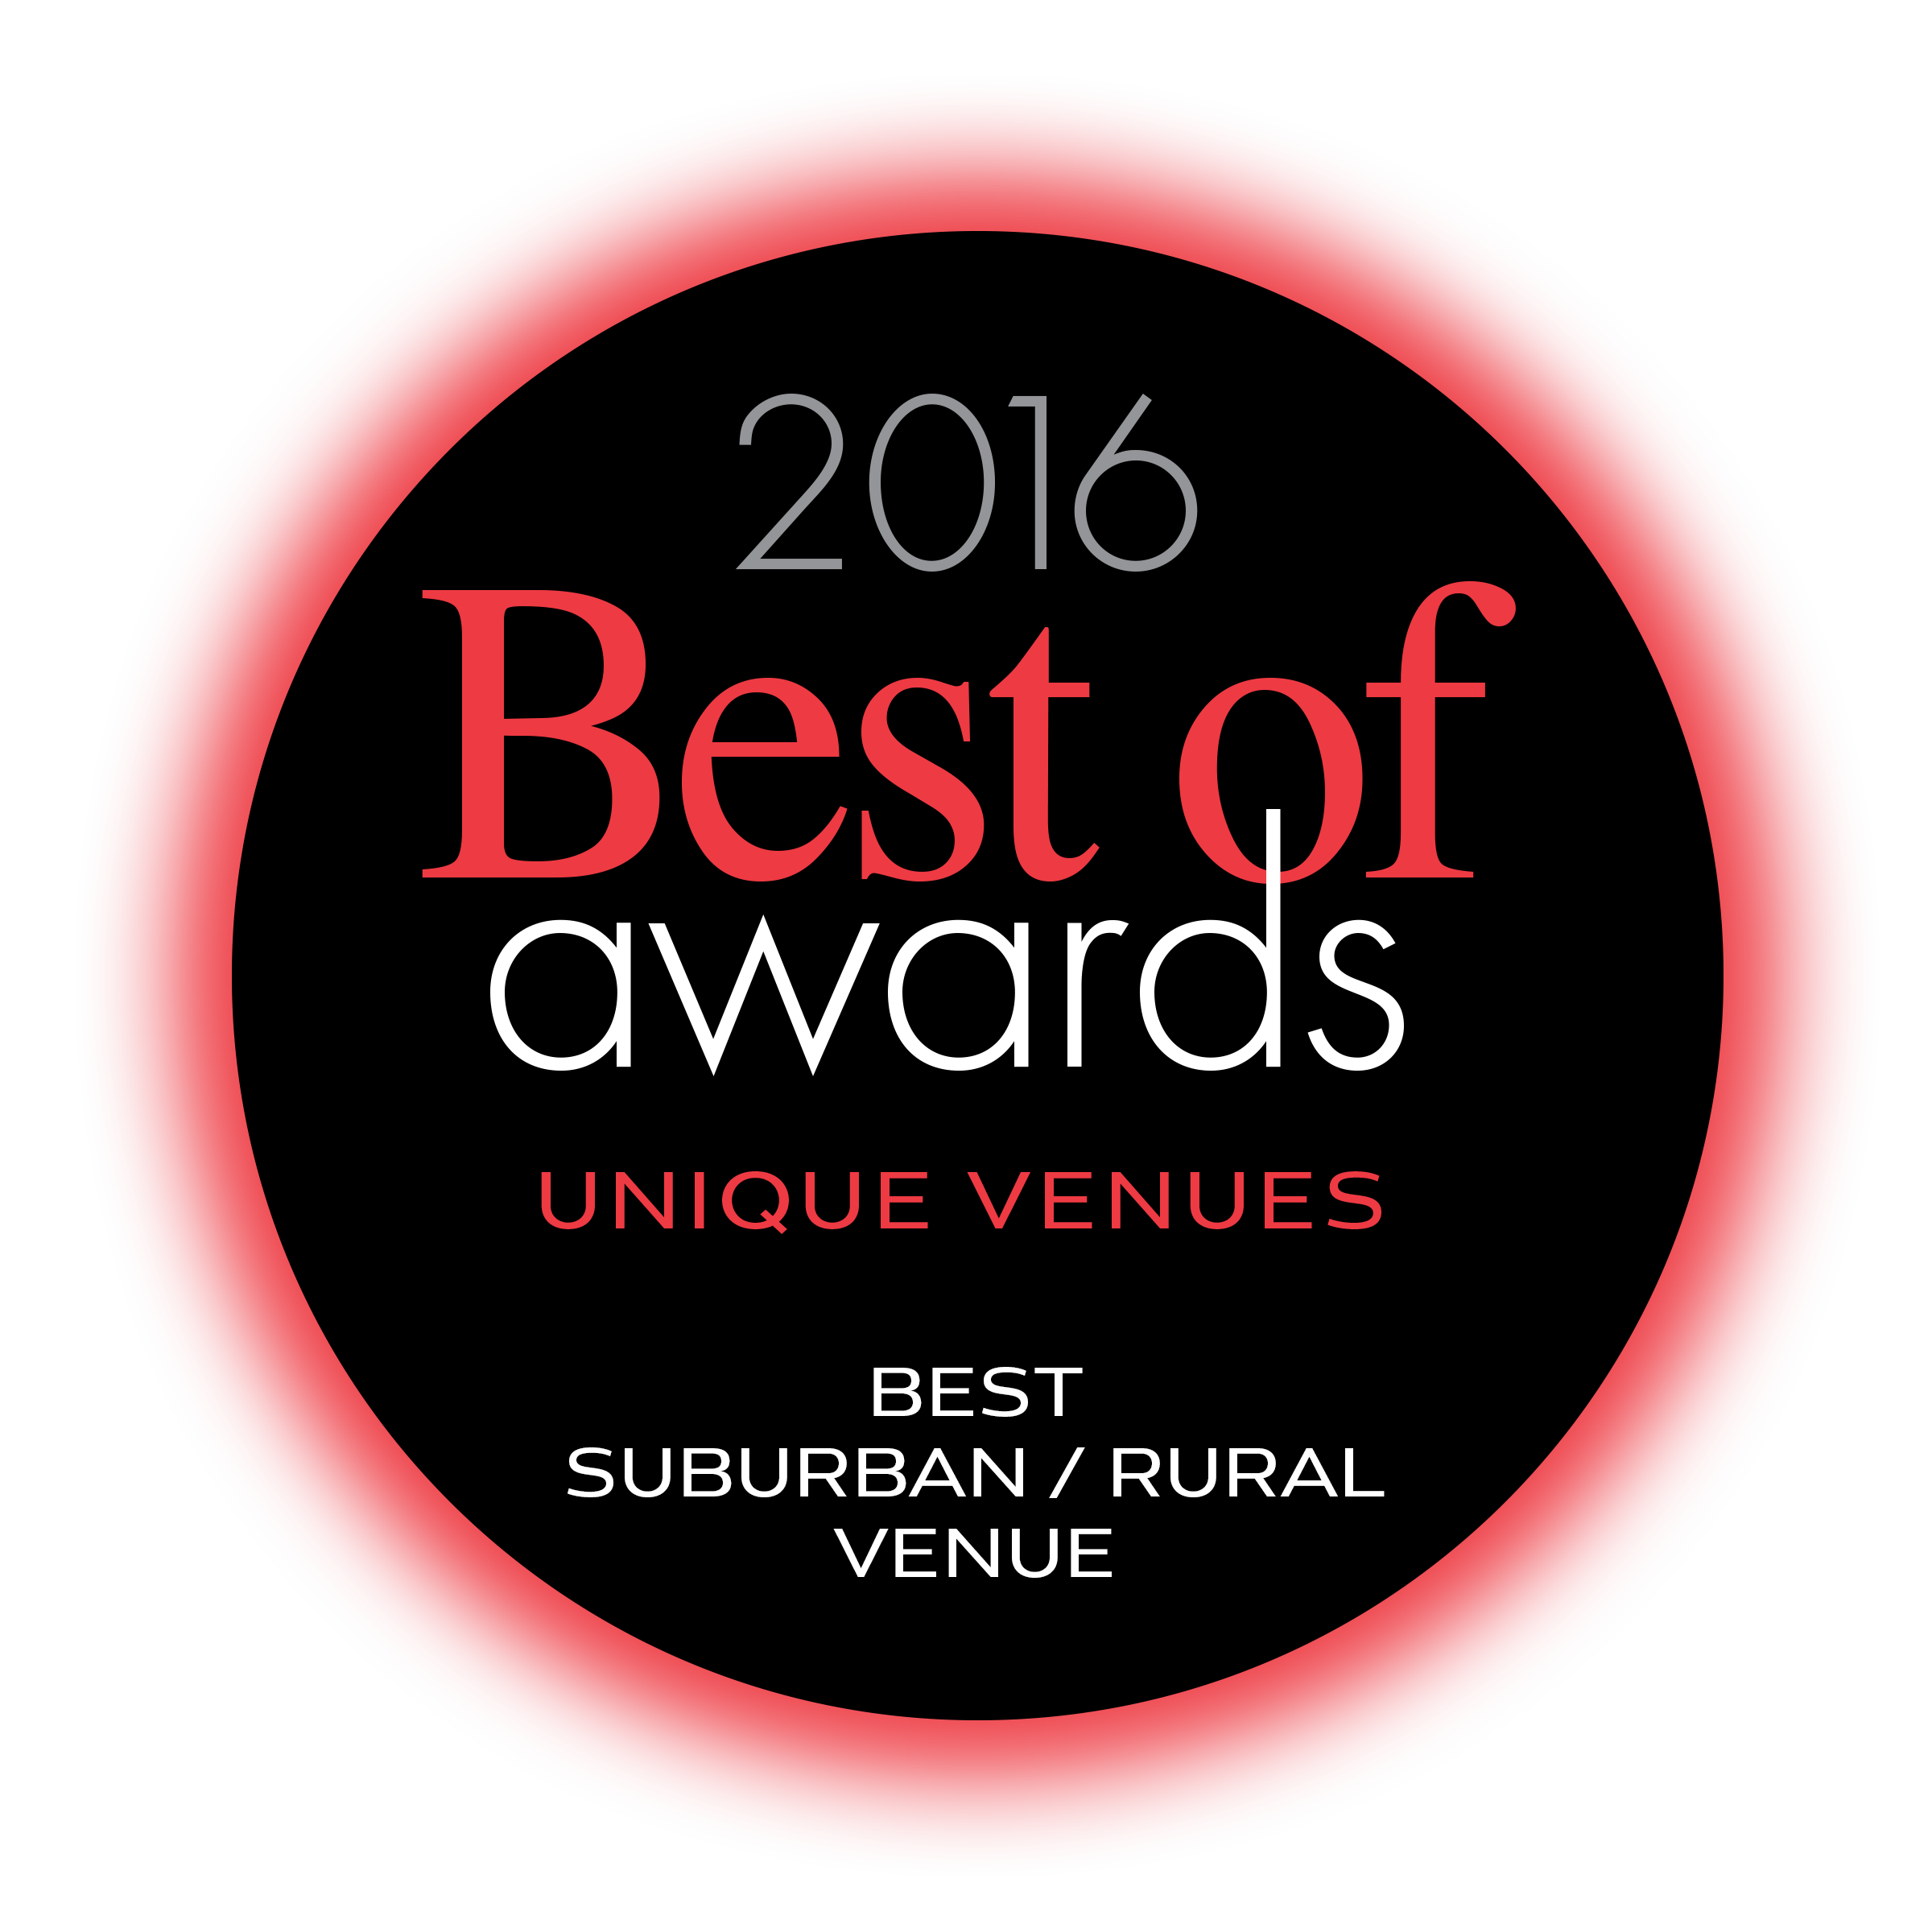 Unique Vendues Best of Awards 2016 Rural Venue